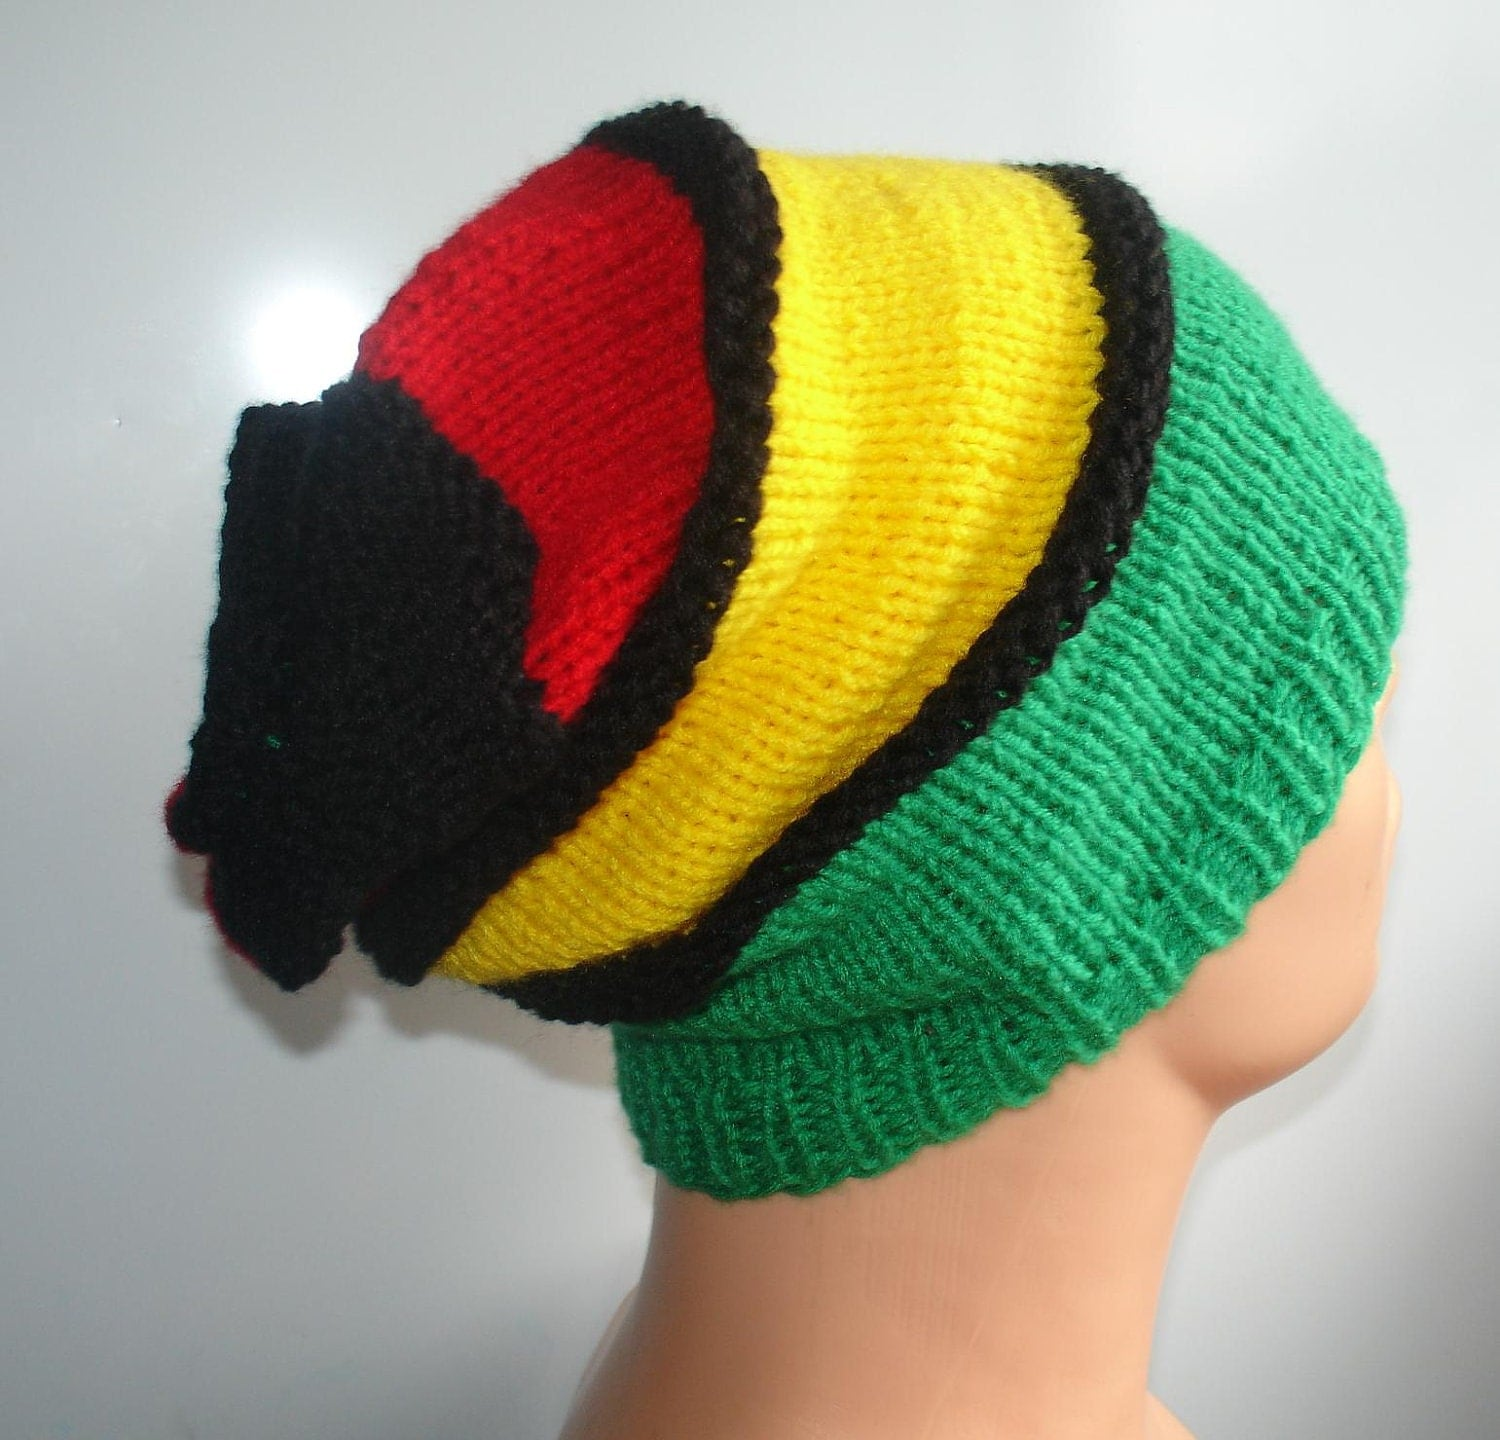 Knitted Scarf Pattern For Beginners : Hat Slouchy Beanie Rasta Beanie Chunky Knit Accessories by Ifonka